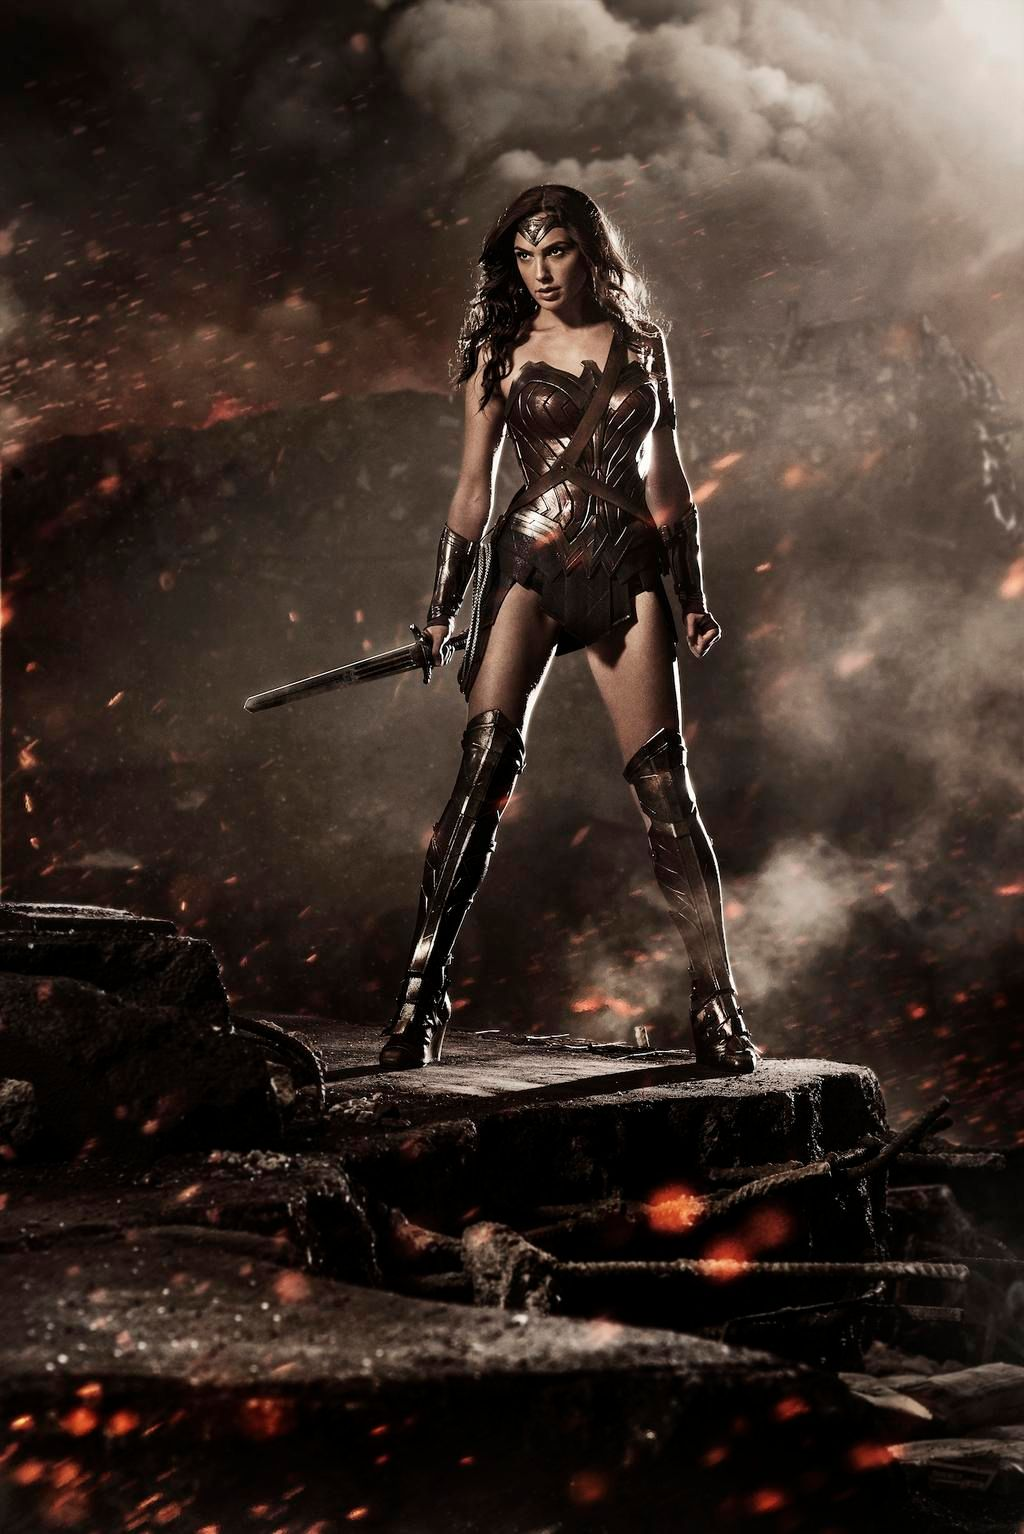 Wonder Woman's Origin in 'Batman v Superman' Revealed